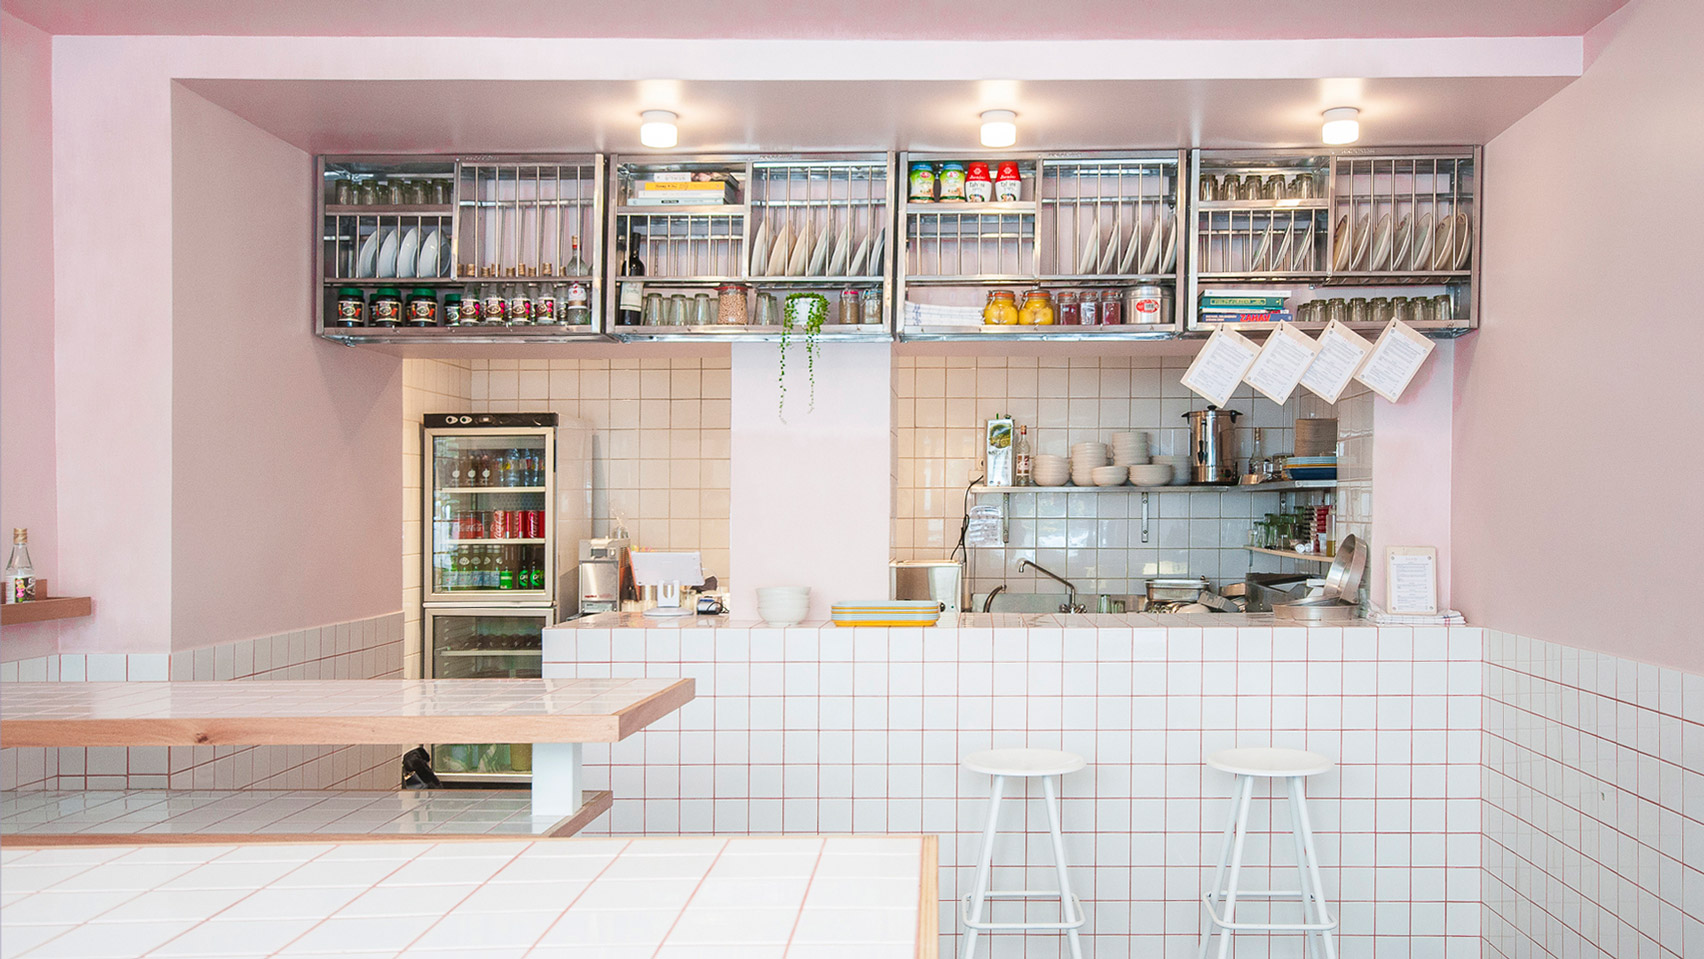 Joyful Chaos Inspires Design Of Yafo Hummus Deli In Paris